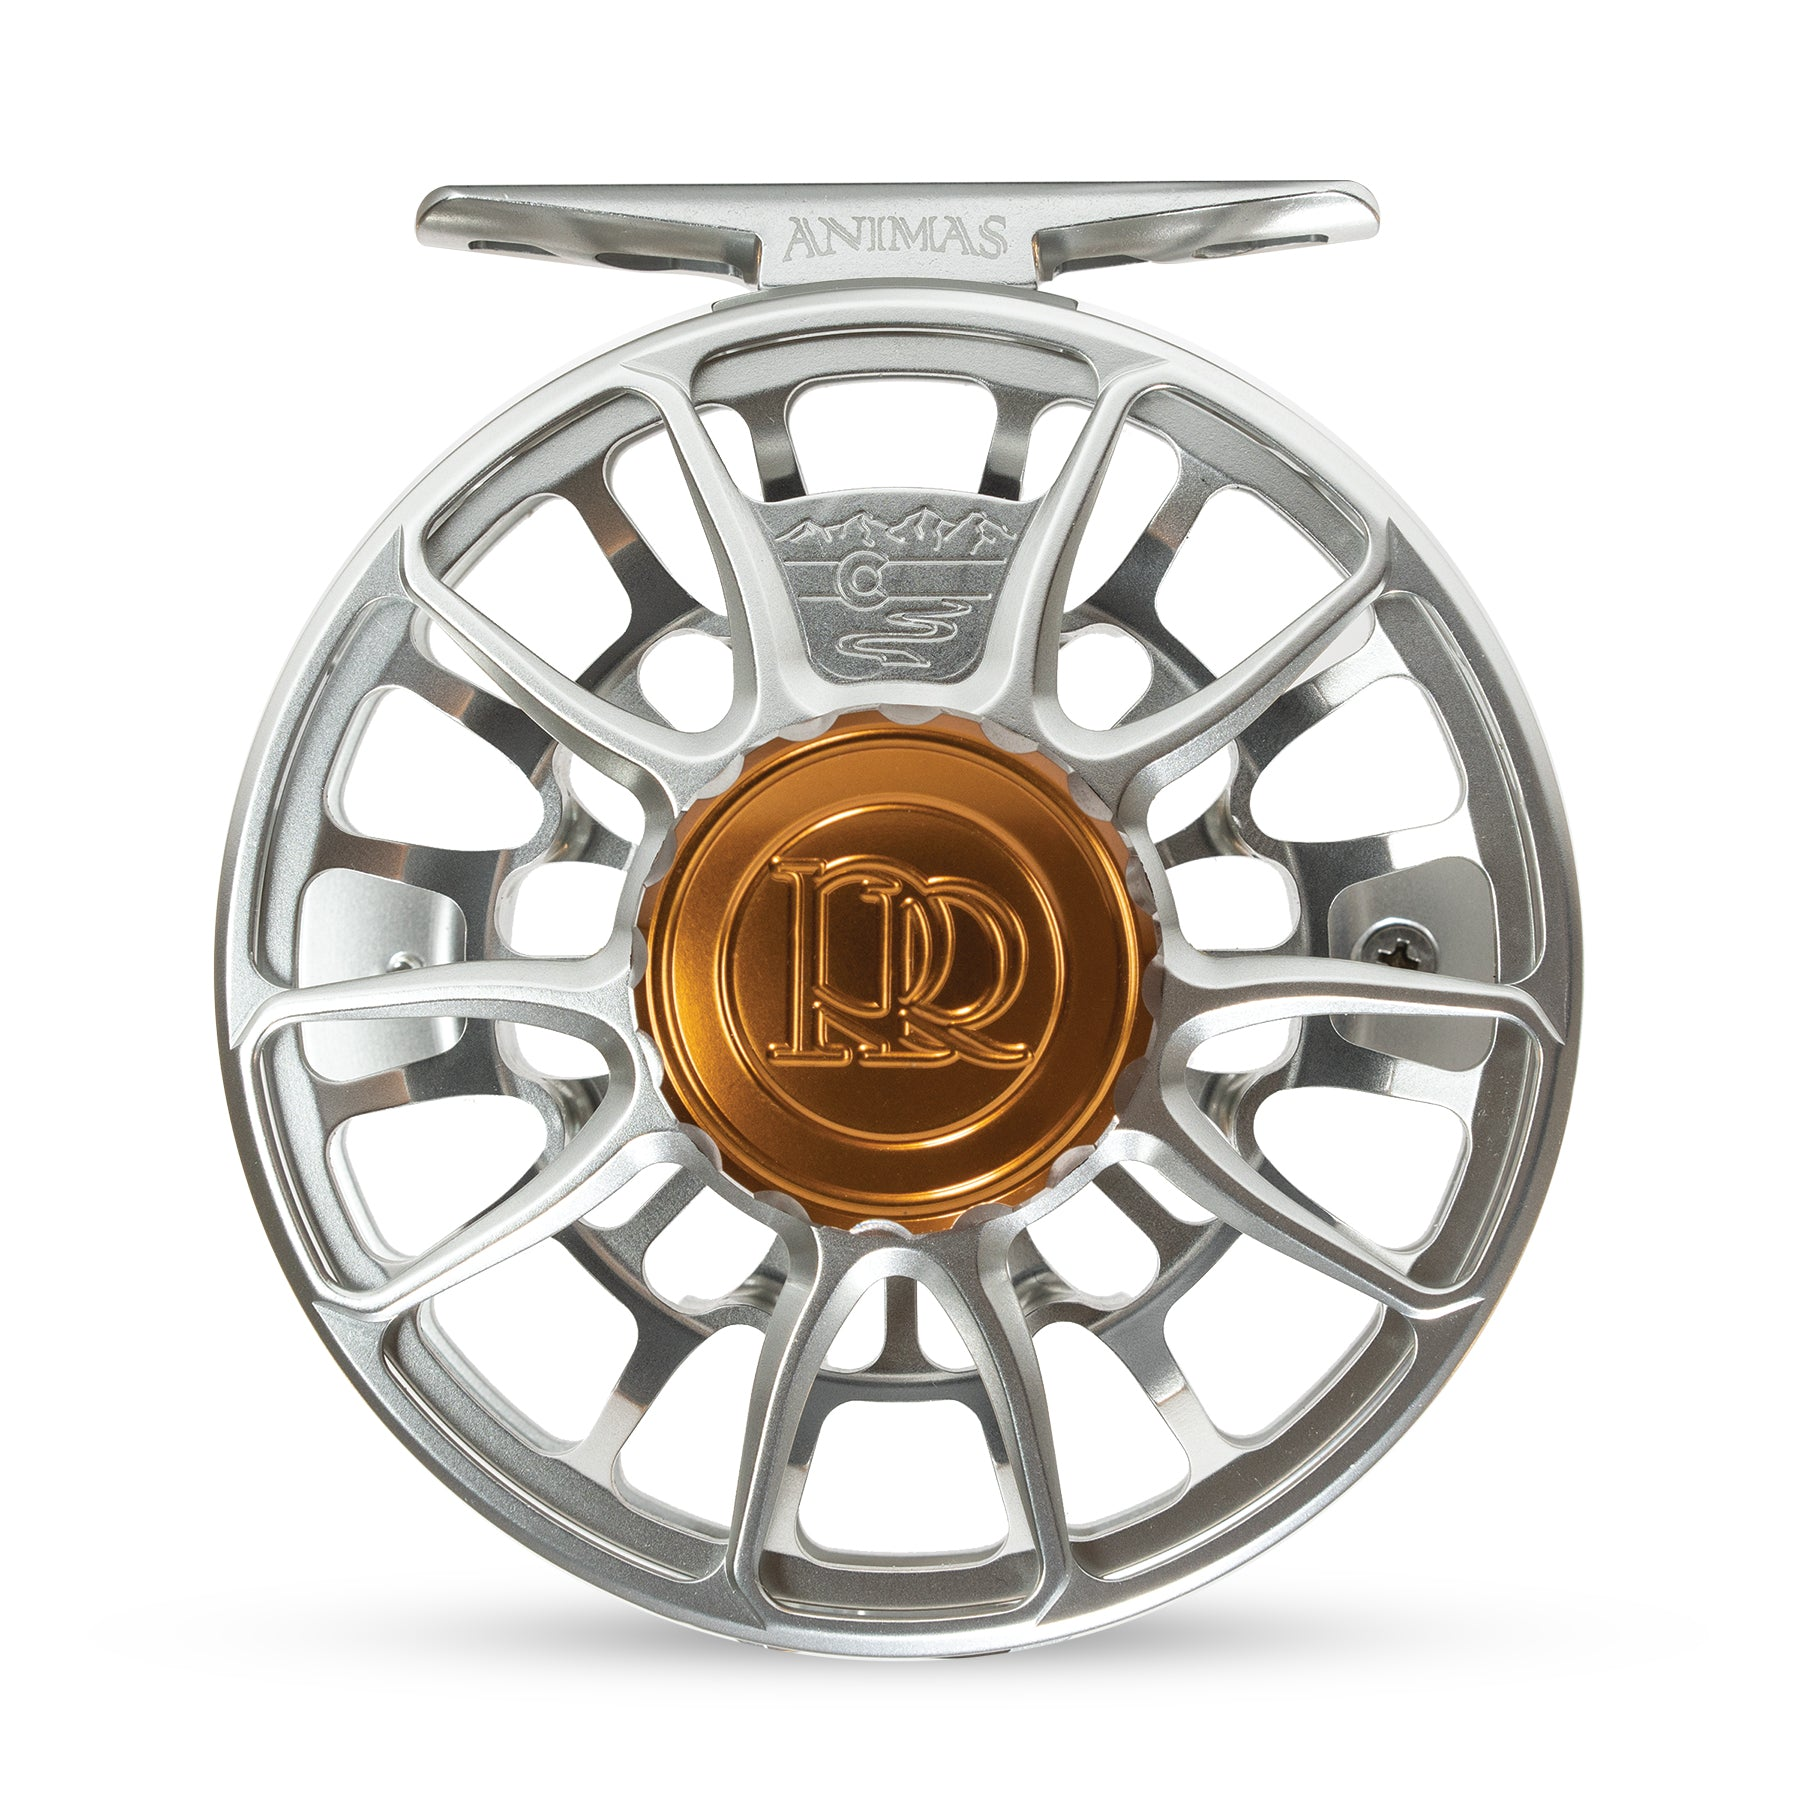 Ross Reels Animas Disc Drag Fly Reel